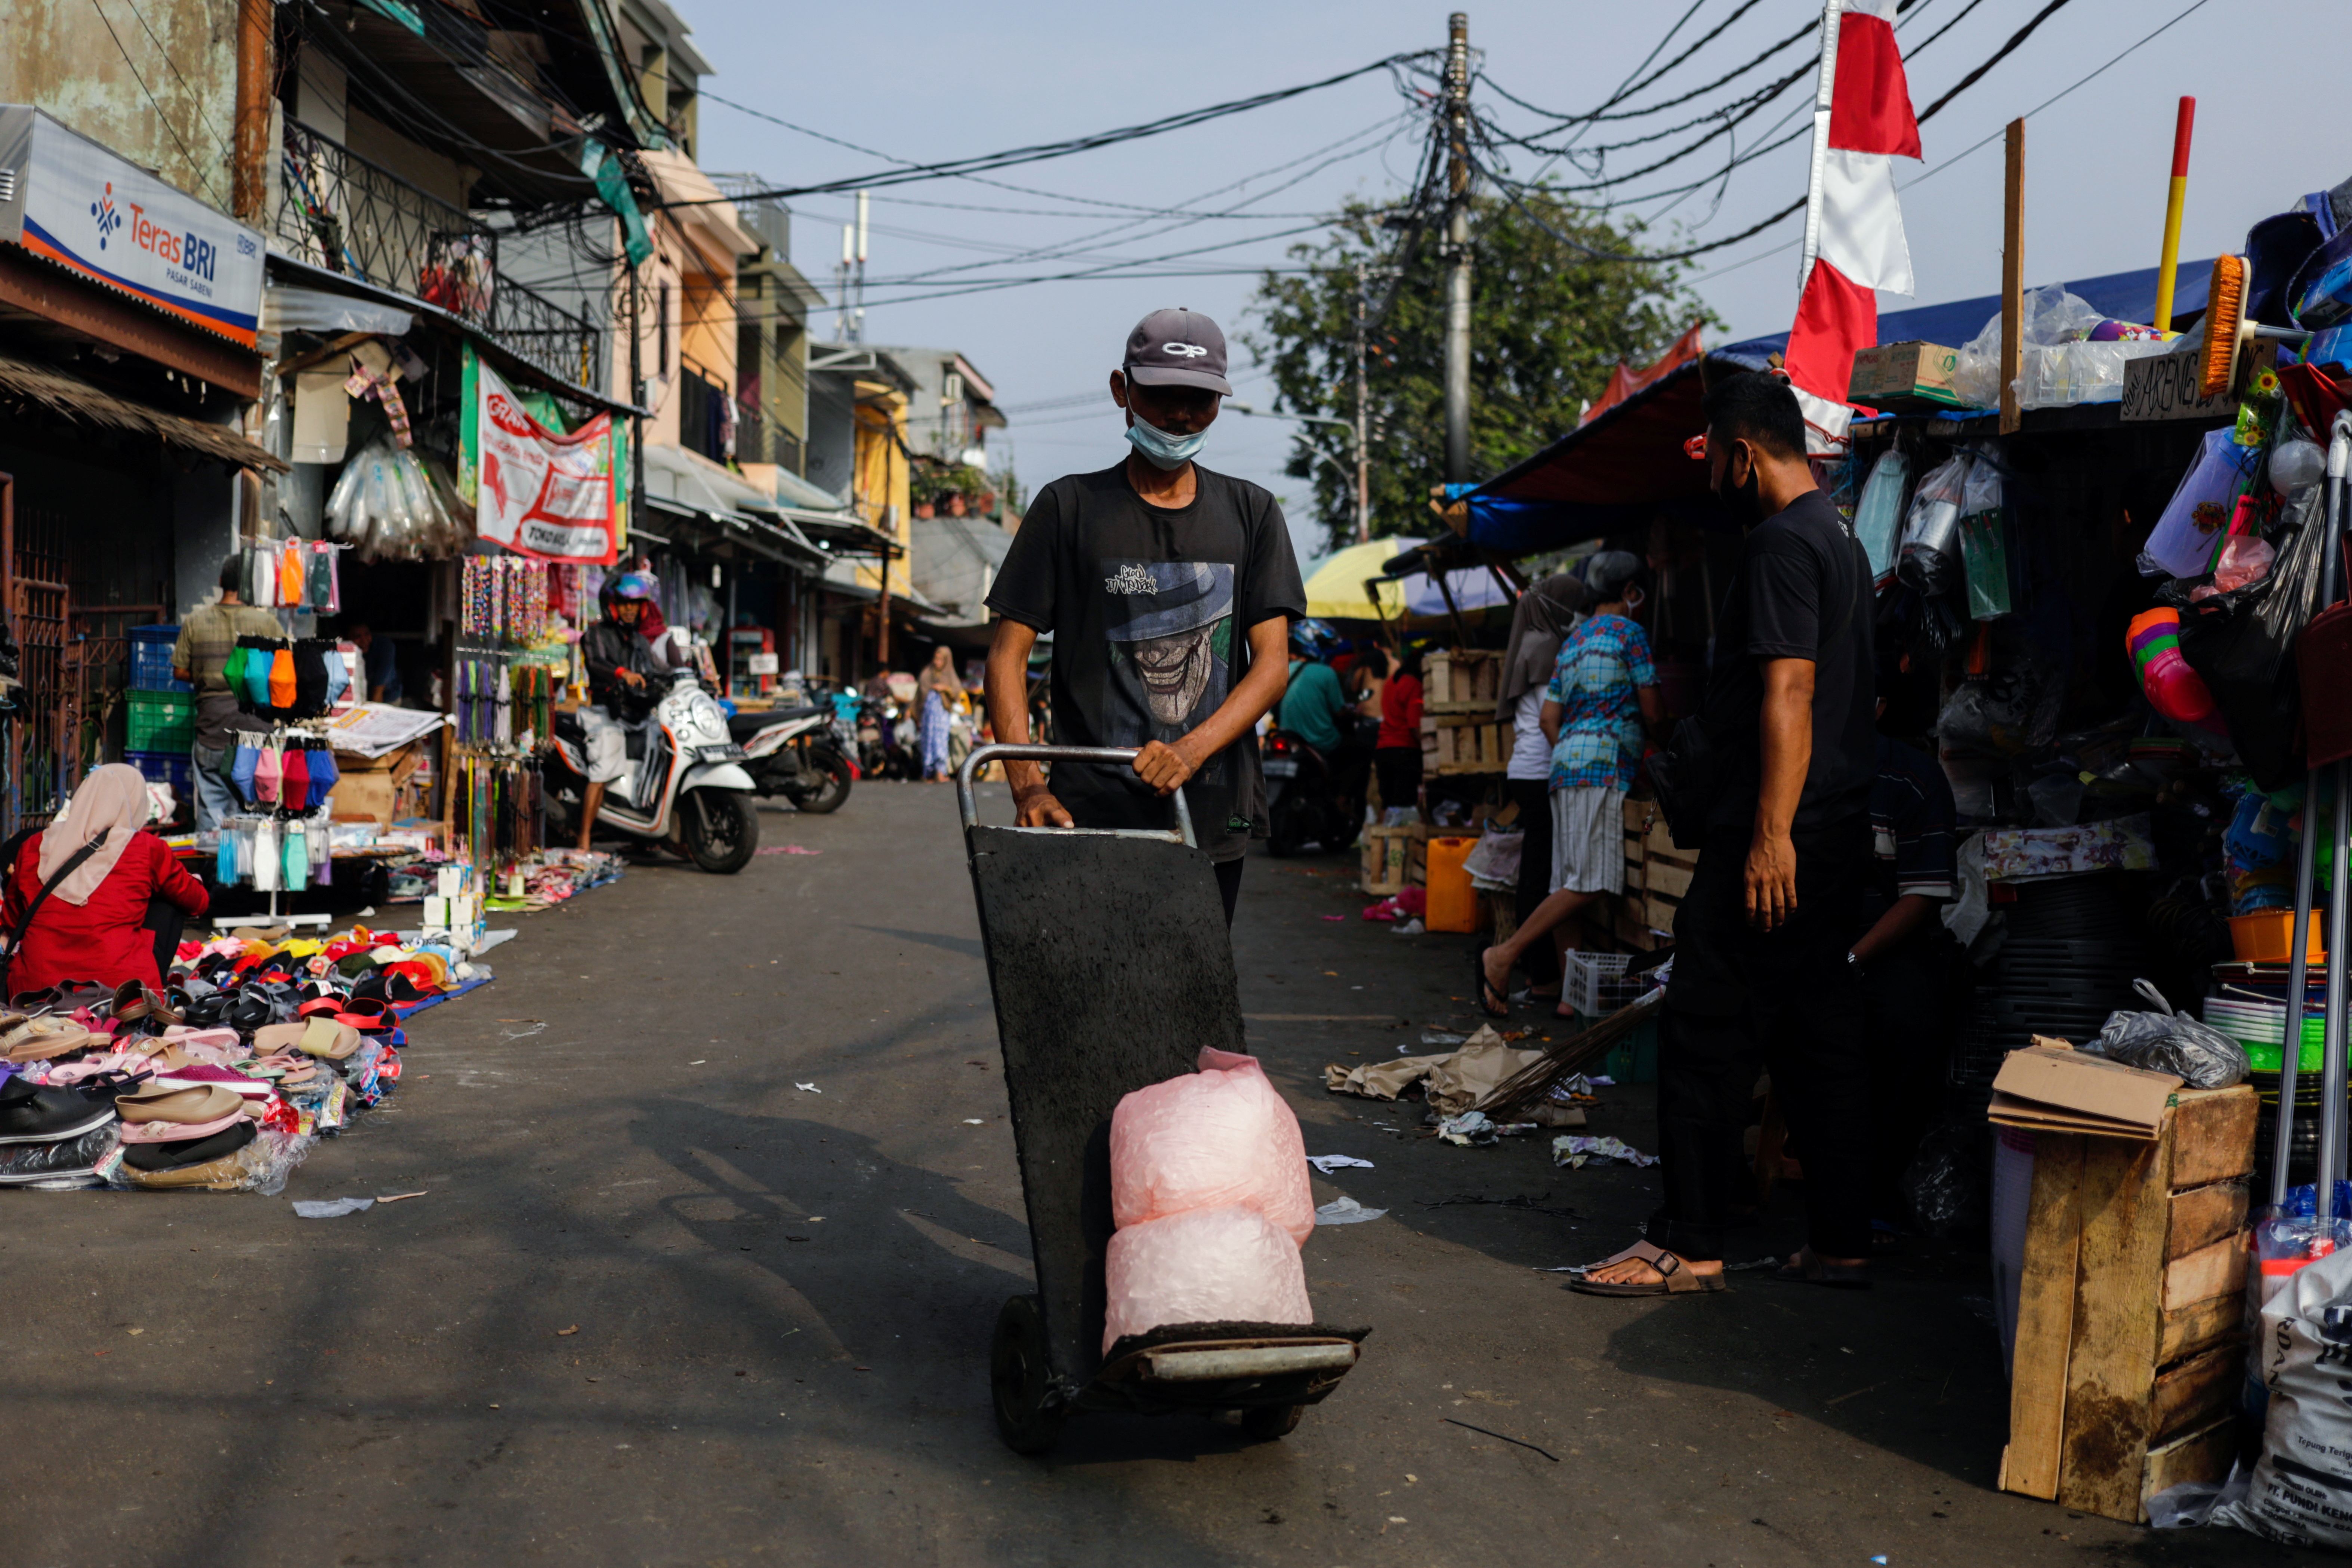 A man wearing a protective mask pushes a trolley at a traditional market amid the coronavirus disease (COVID-19) outbreak, in Jakarta, Indonesia, July 24, 2021. REUTERS/Willy Kurniawan